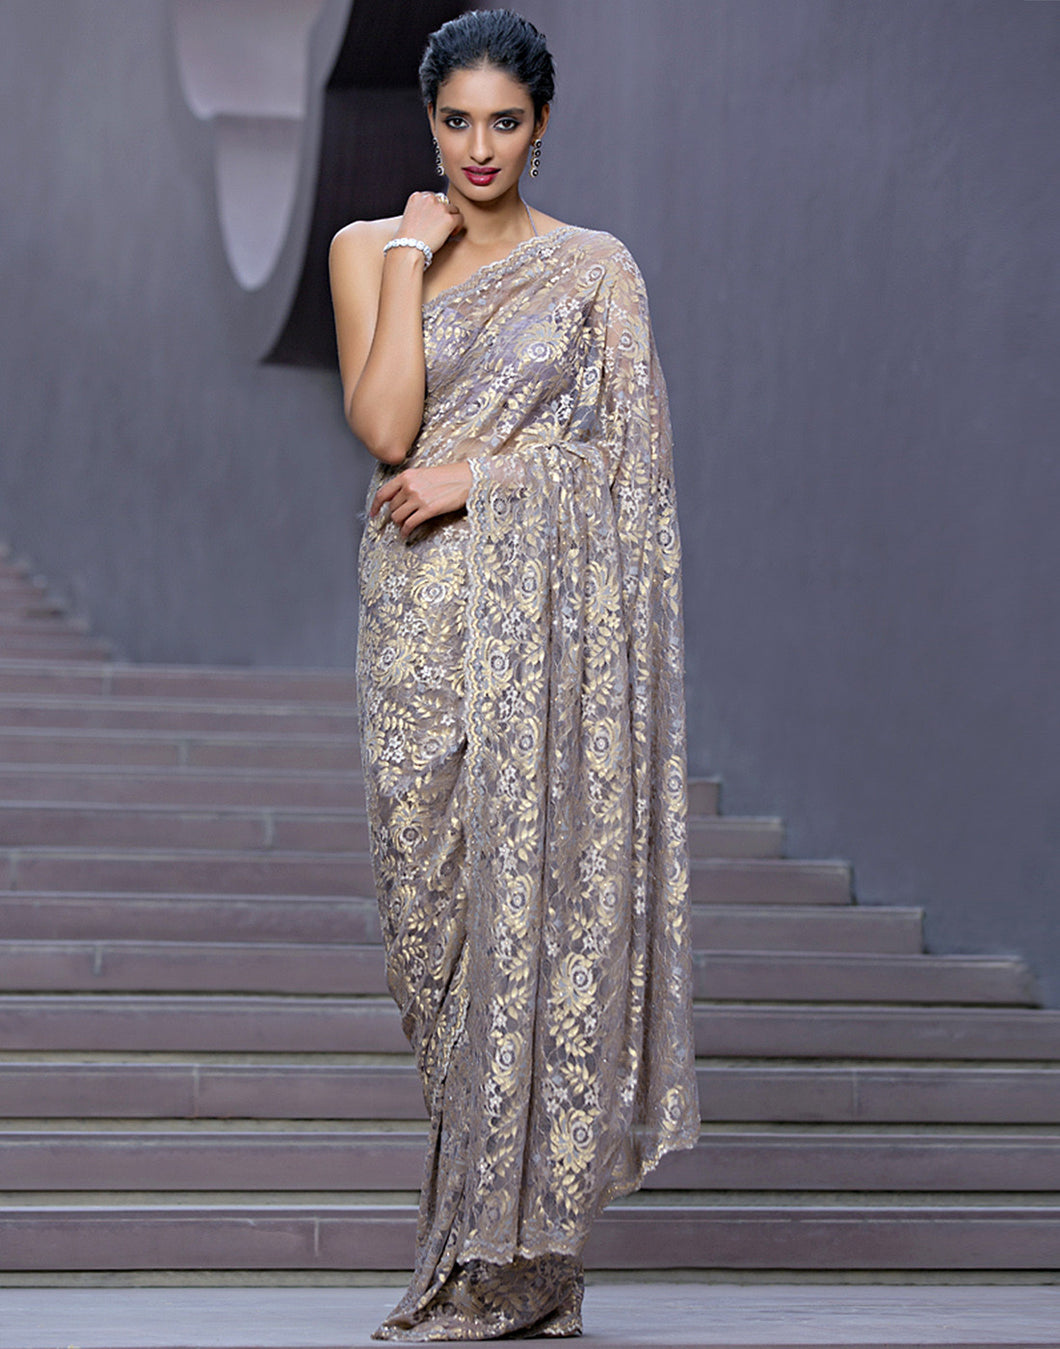 Meena Bazaar: Embellished Chantilly Lace Saree